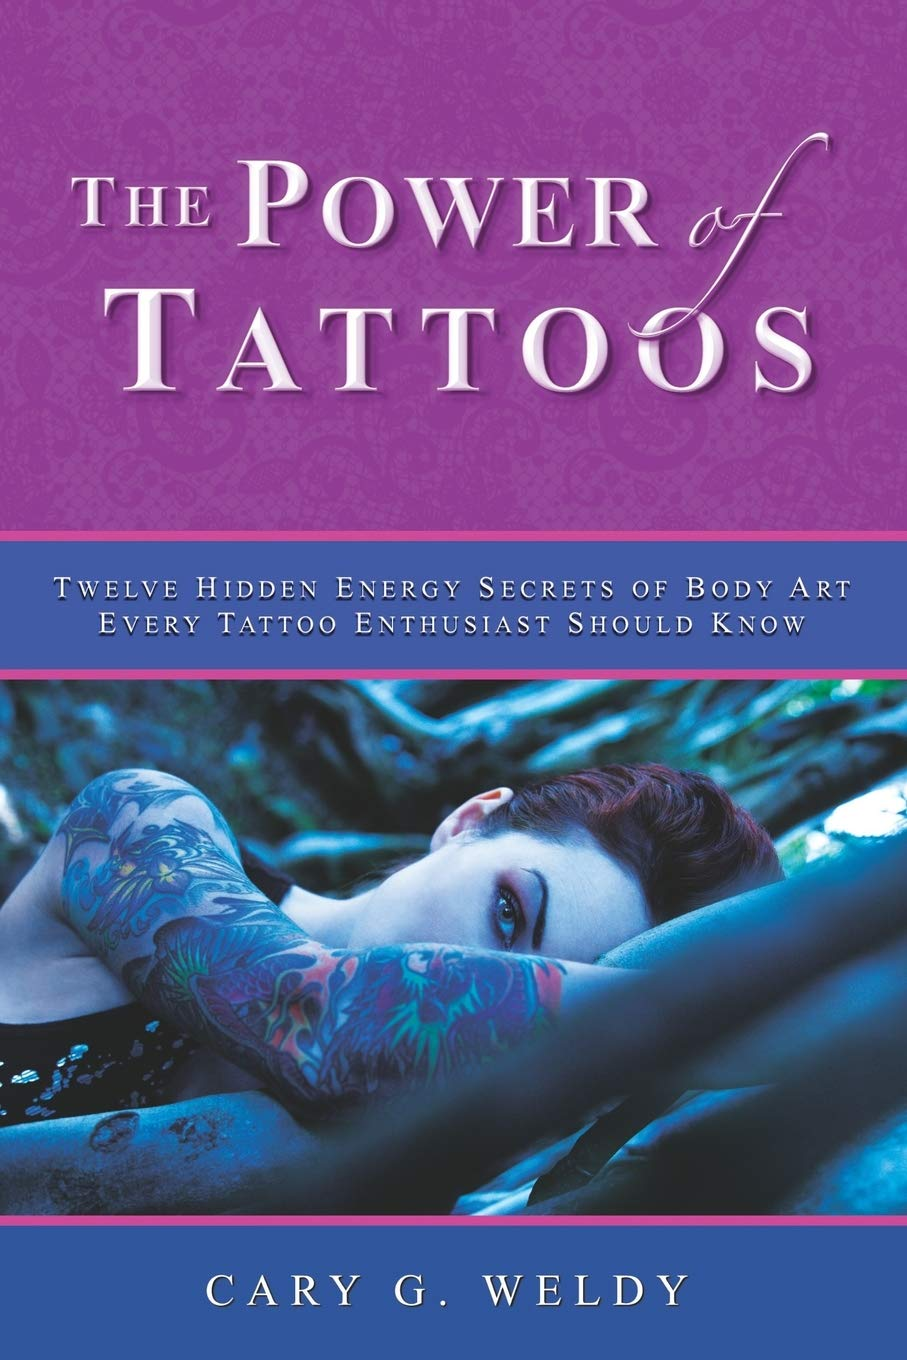 The Power Of Tattoos Twelve Hidden Energy Secrets Of Body Art Every Tattoo Enthusiast Should Know Weldy Cary G 9798677977718 Amazon Com Books